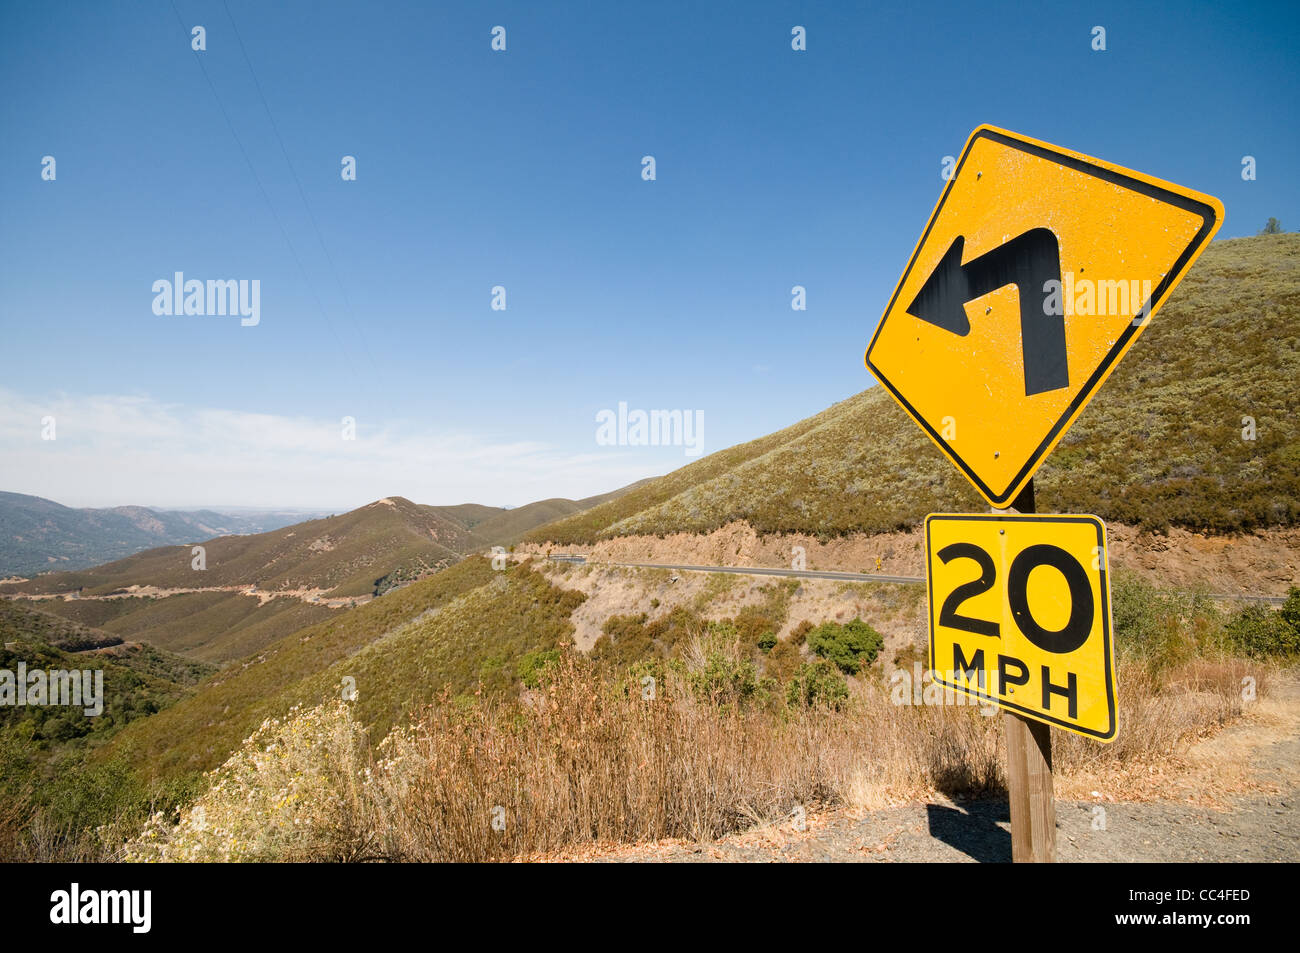 Yellow road warning sign left turn 20mph with long winding road yellow road warning sign left turn 20mph with long winding road california publicscrutiny Images